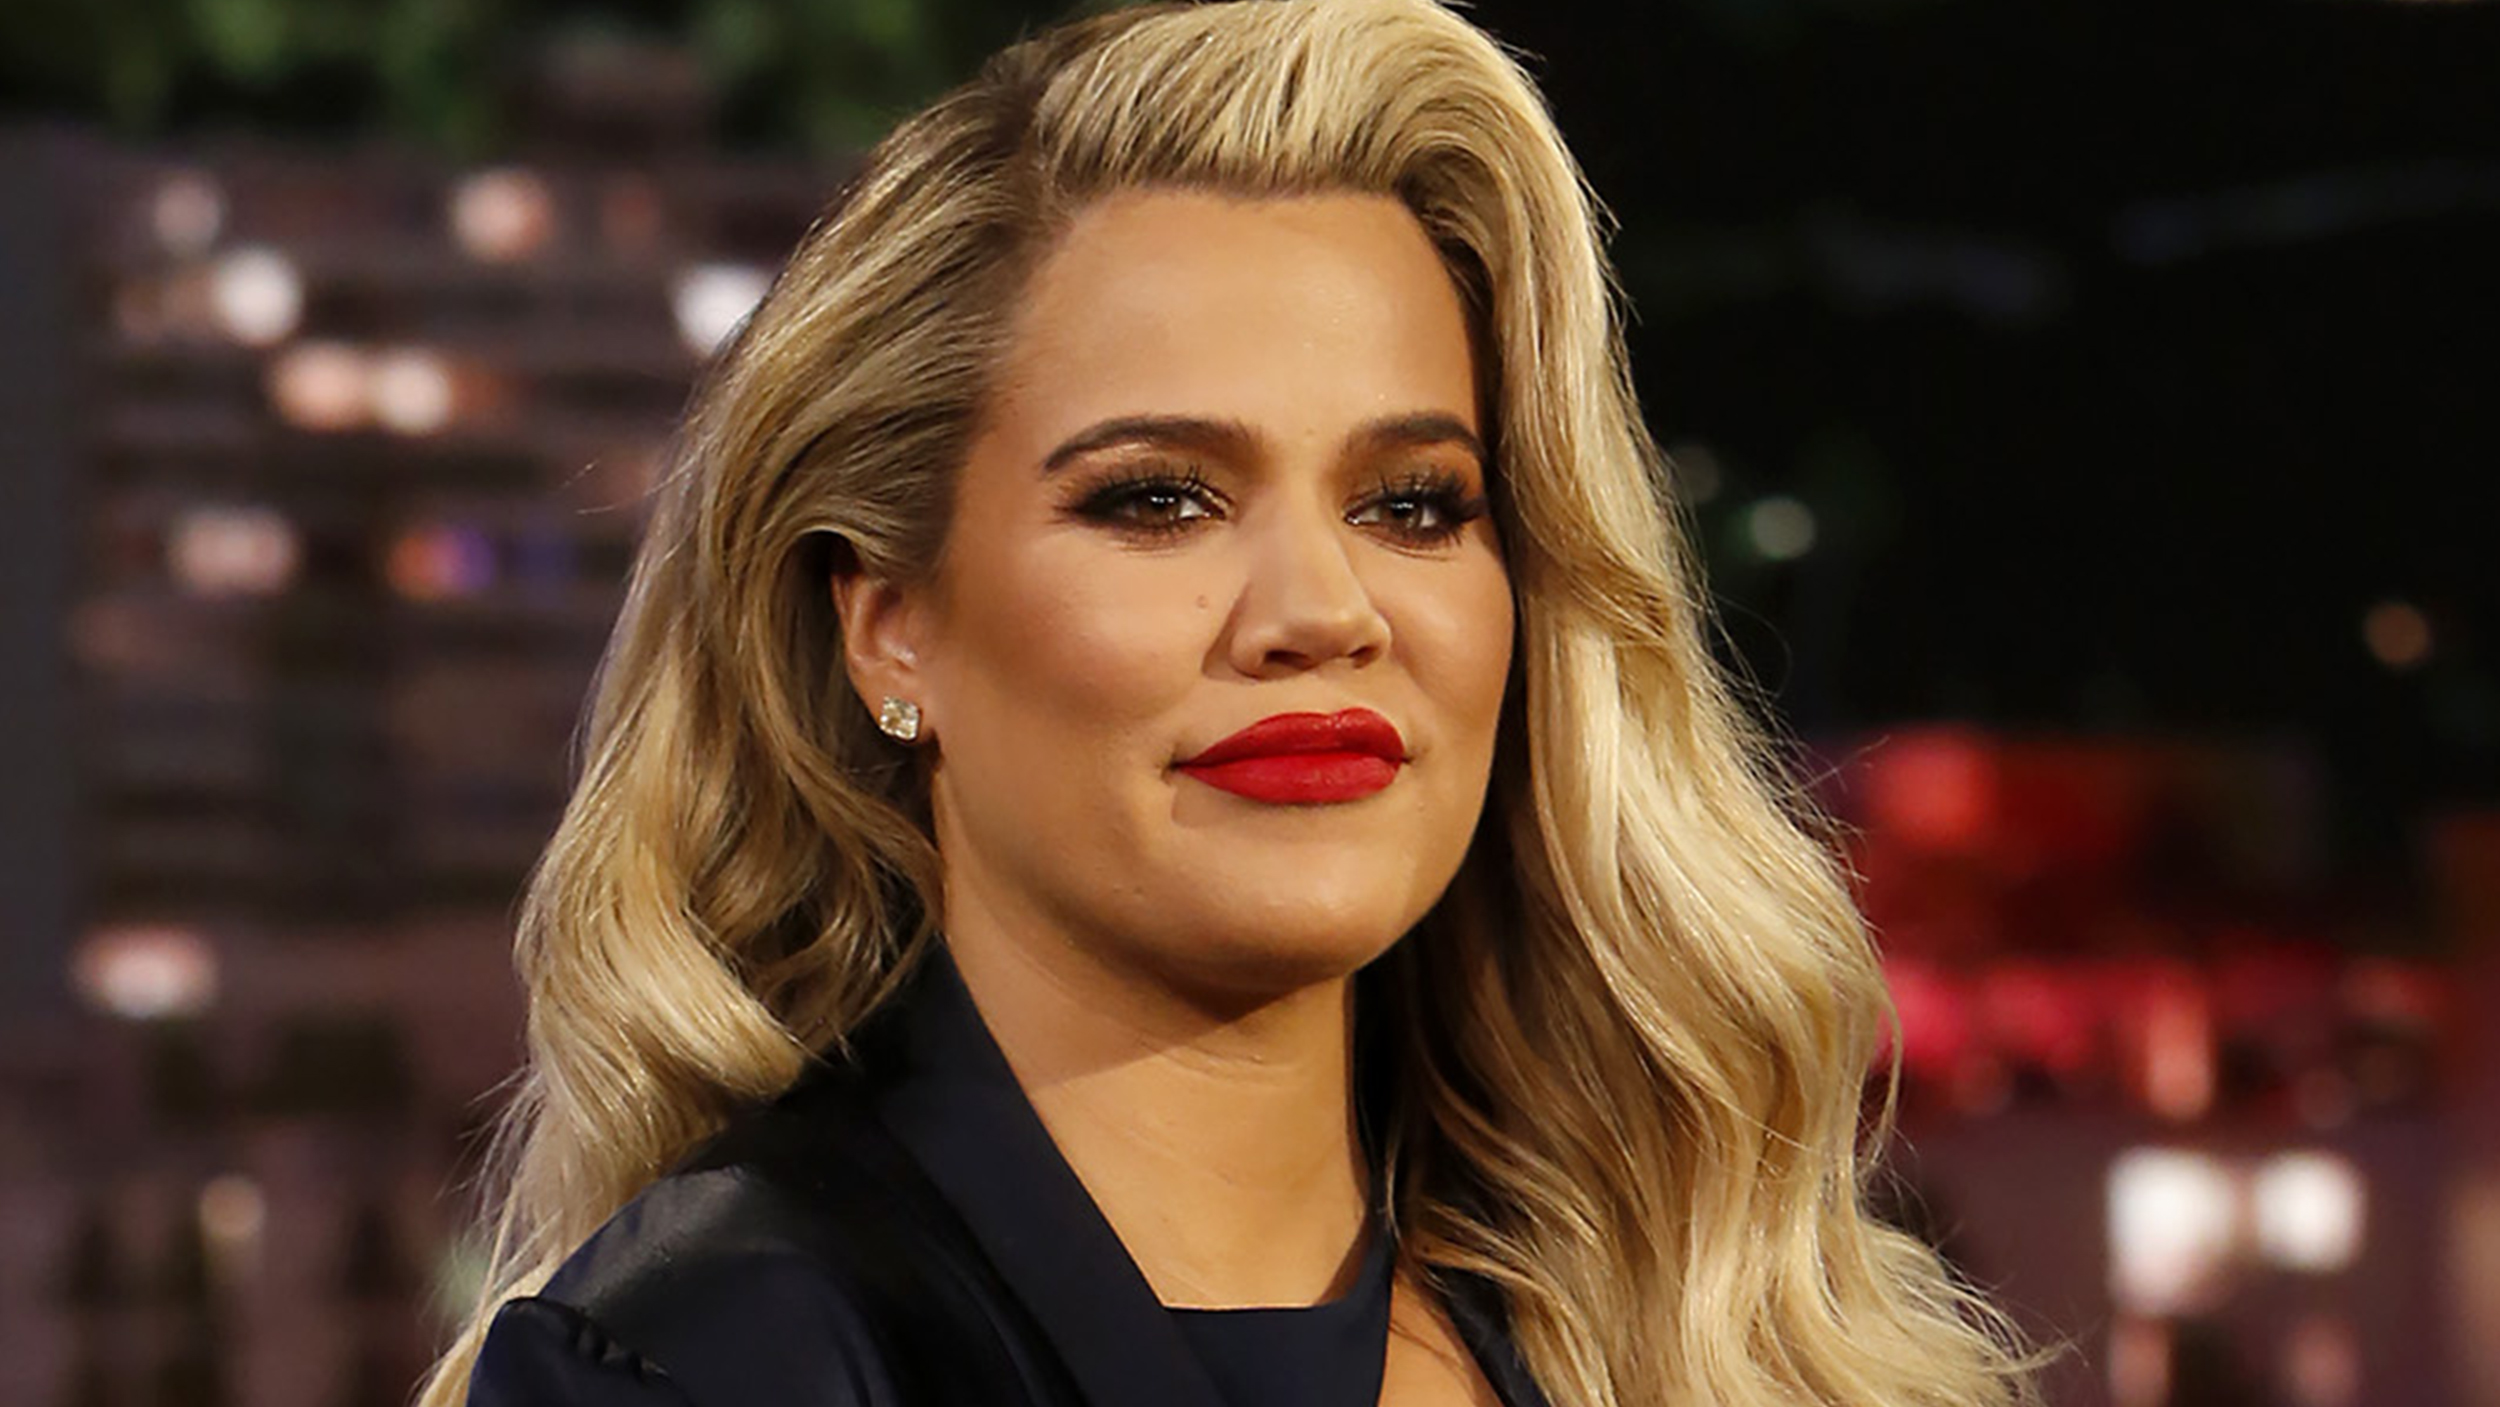 Khloe Kardashian naked (95 gallery), photos Topless, Instagram, cleavage 2020